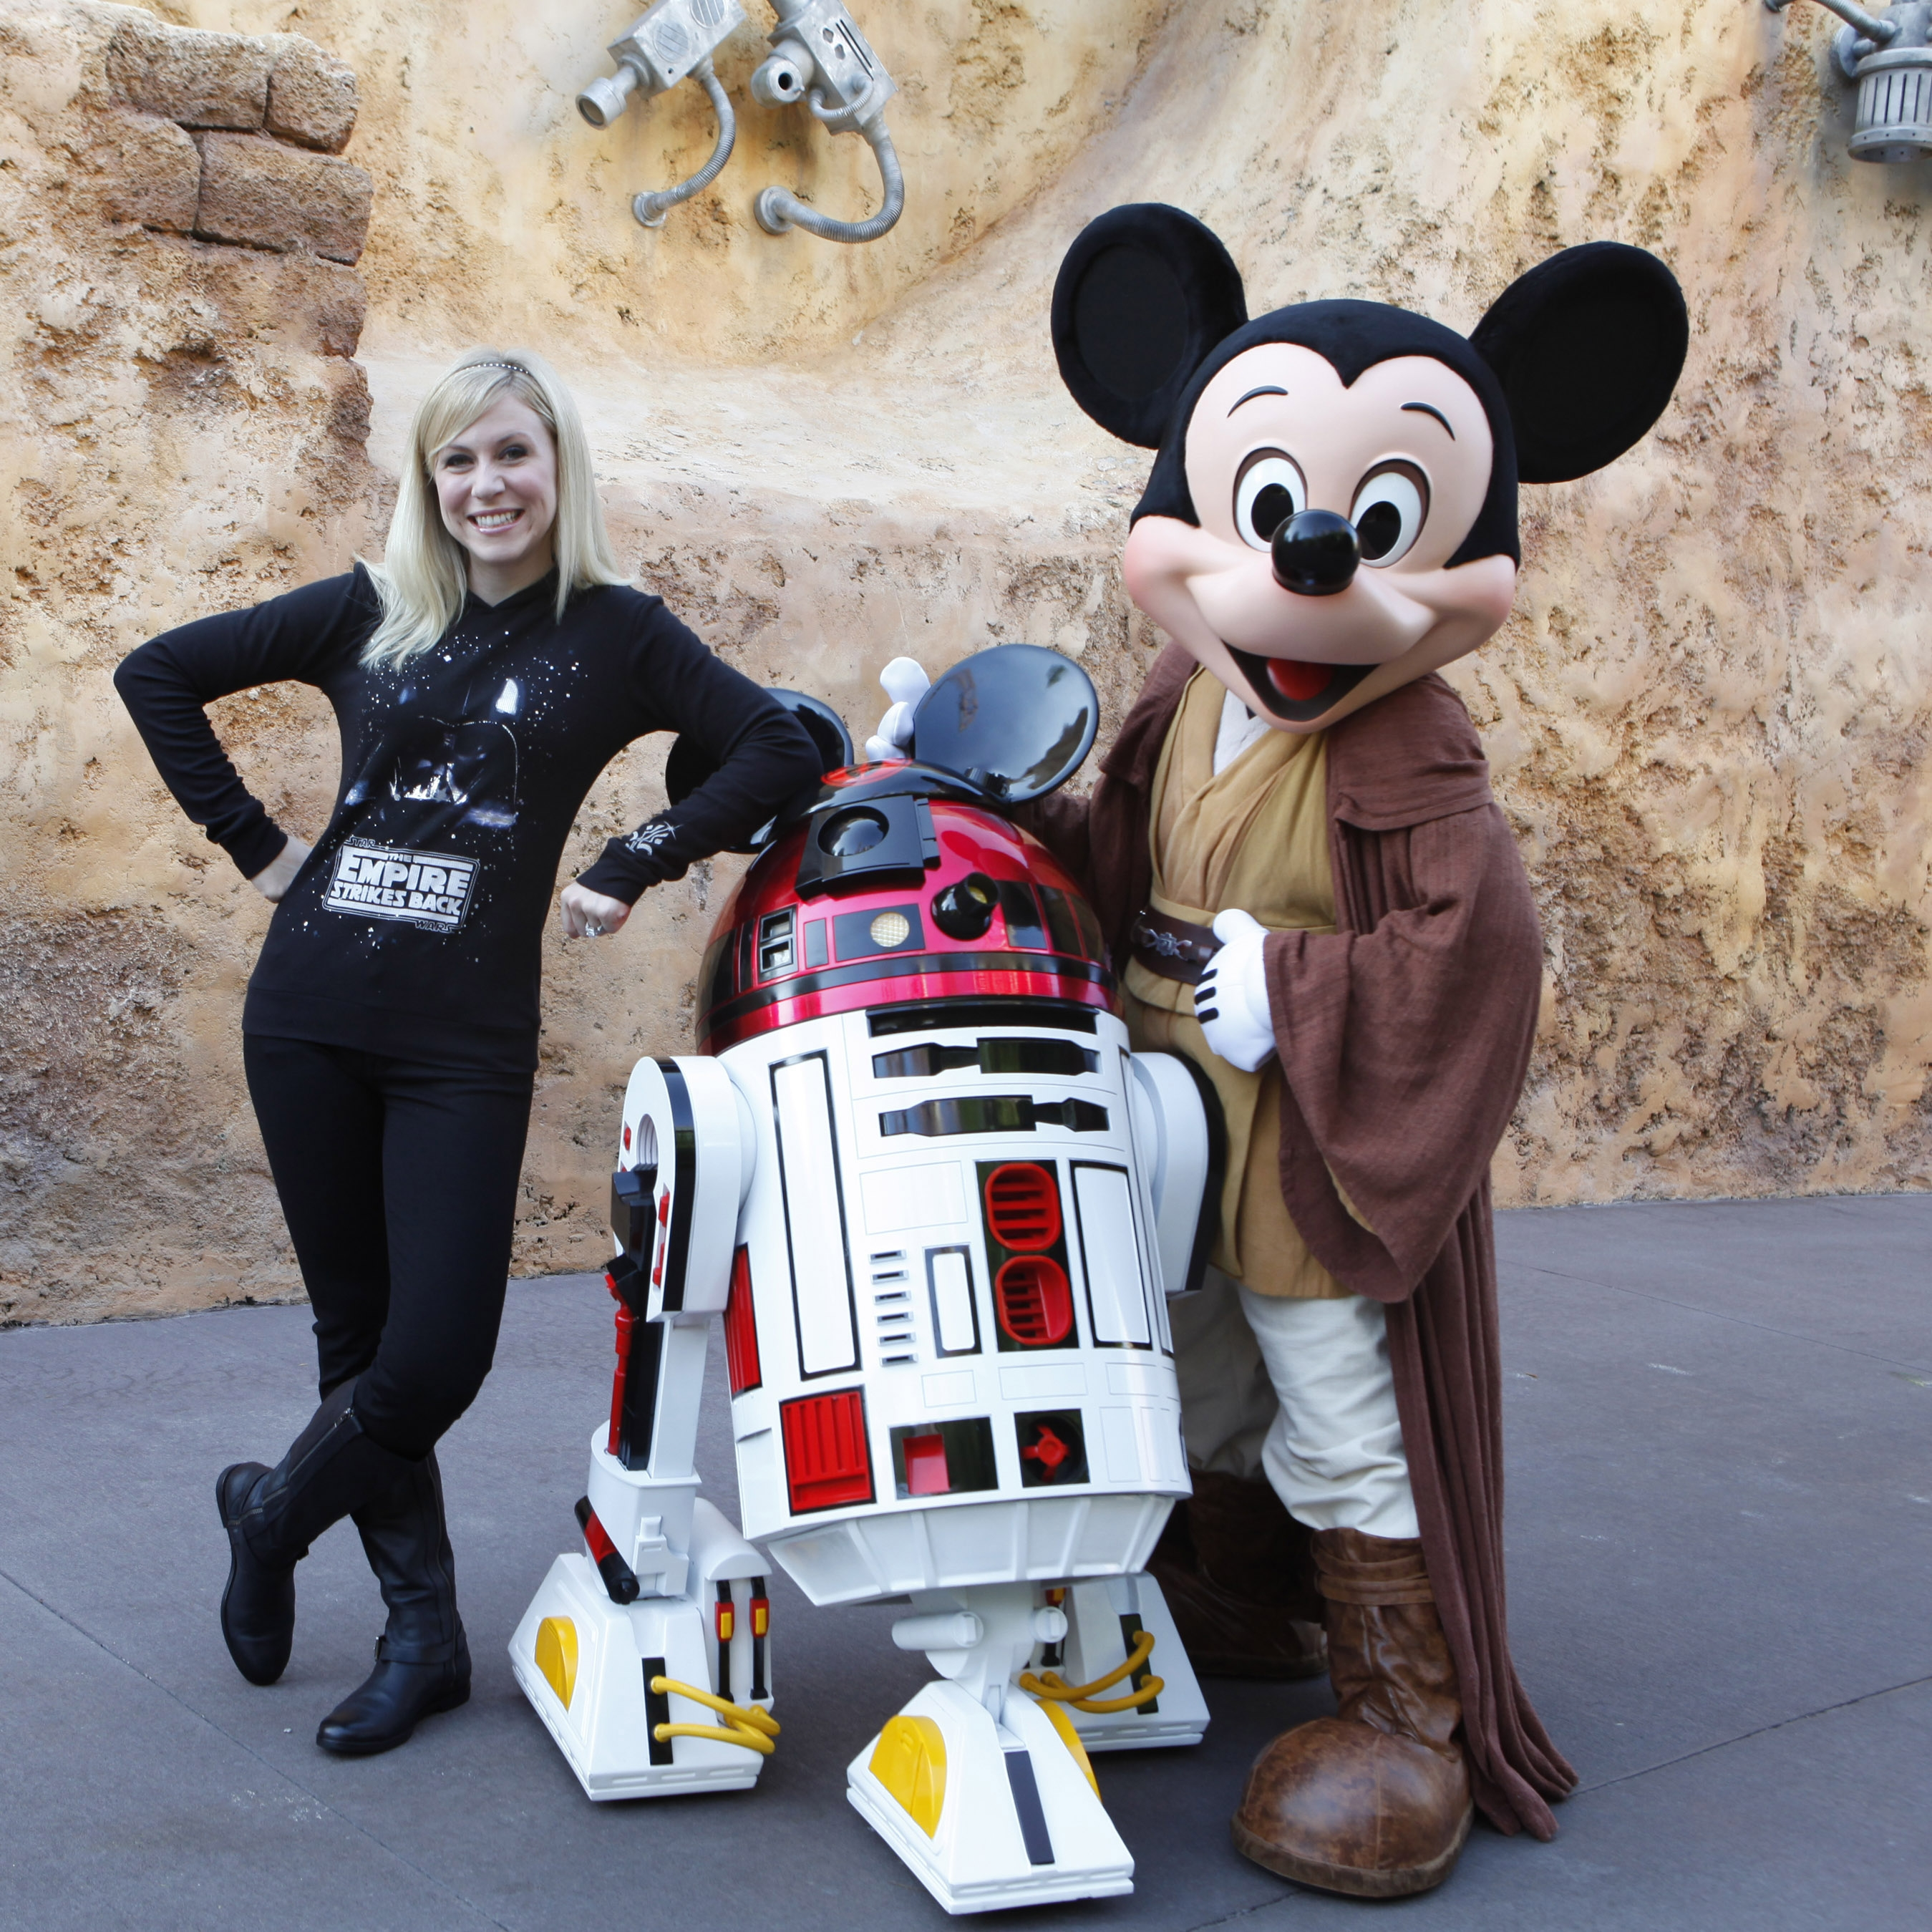 Wordless Wednesday Mickey Mouse: Wordless Wednesday – Happy Star Wars Day